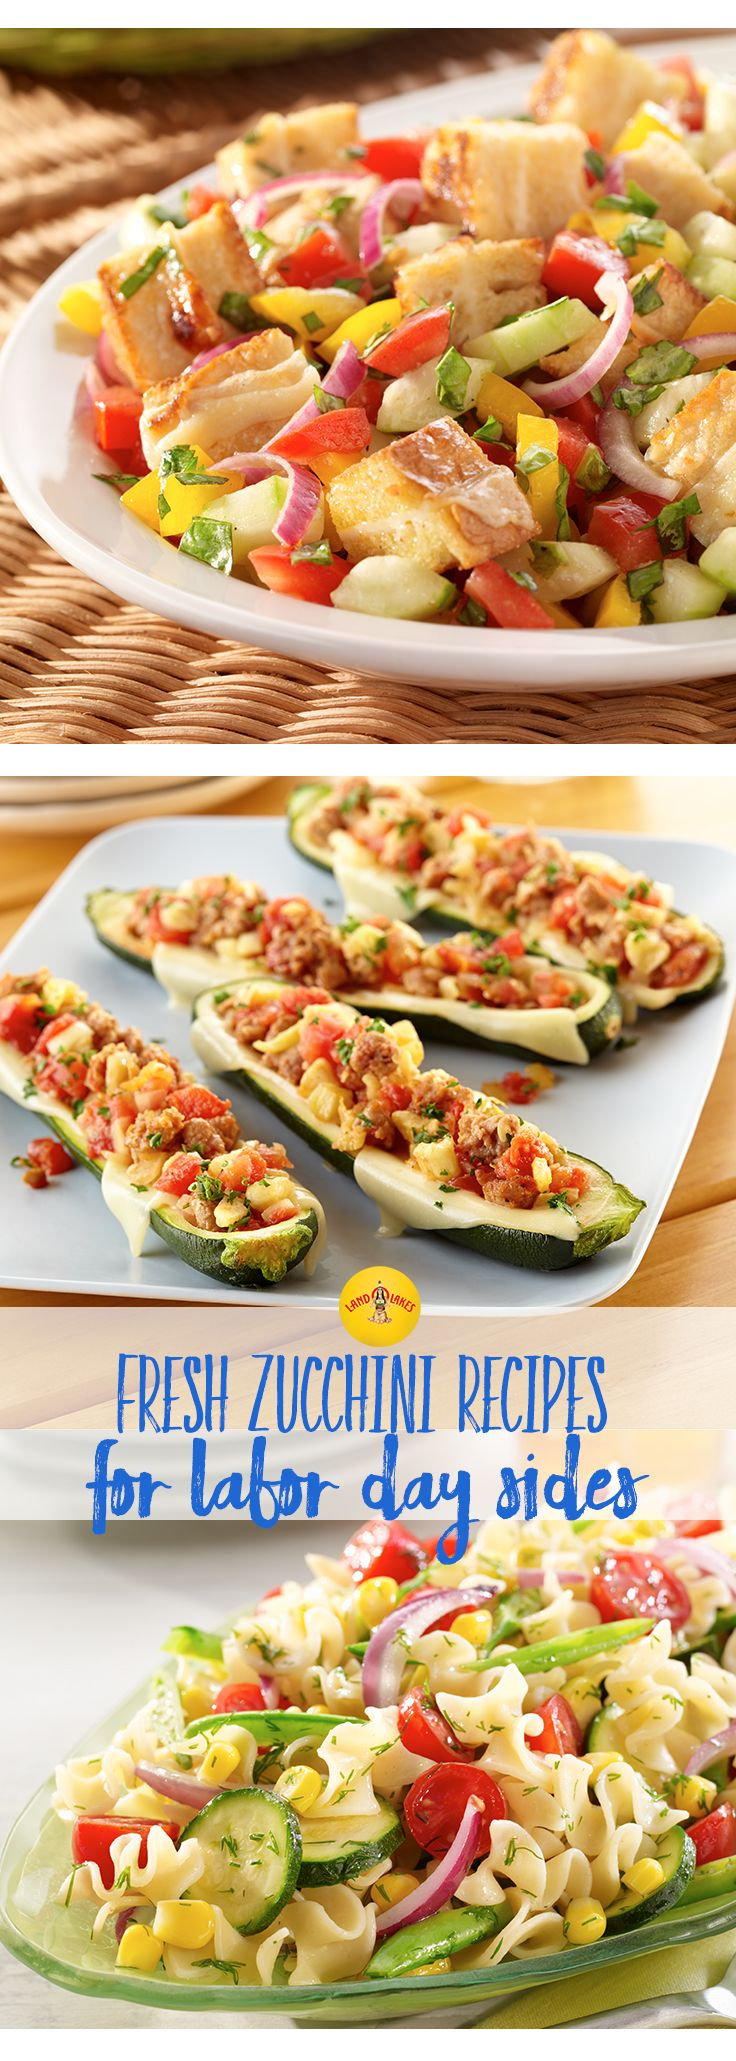 Zucchini is a great addition to any meal especially for an end-of-the-summer bash like Labor Day weekend. Celebrate the summer with sides that are a perfect complement to a juicy, grilled burger.